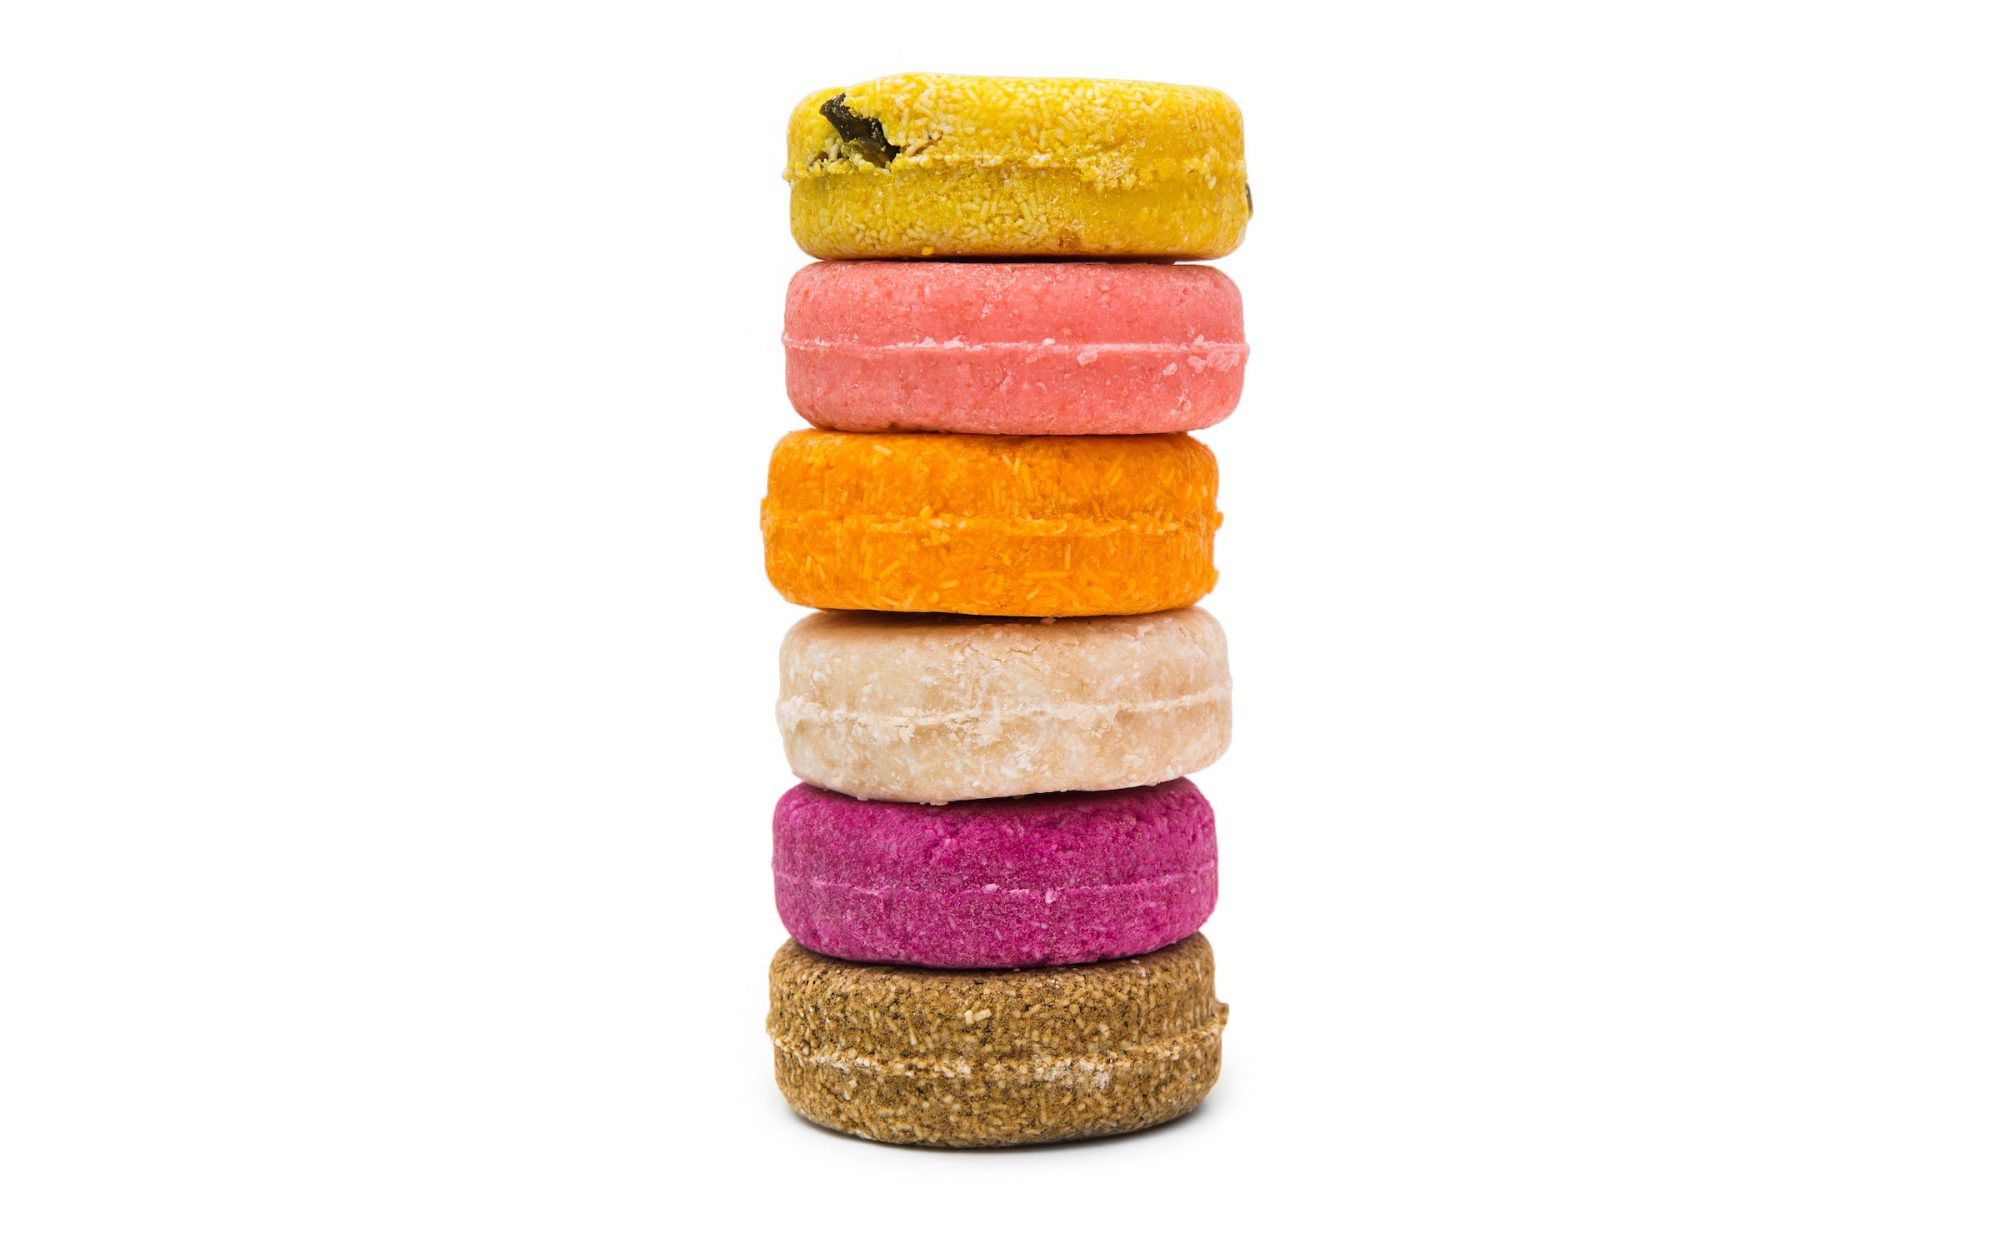 Lush Cosmetics' New Shampoo Bars